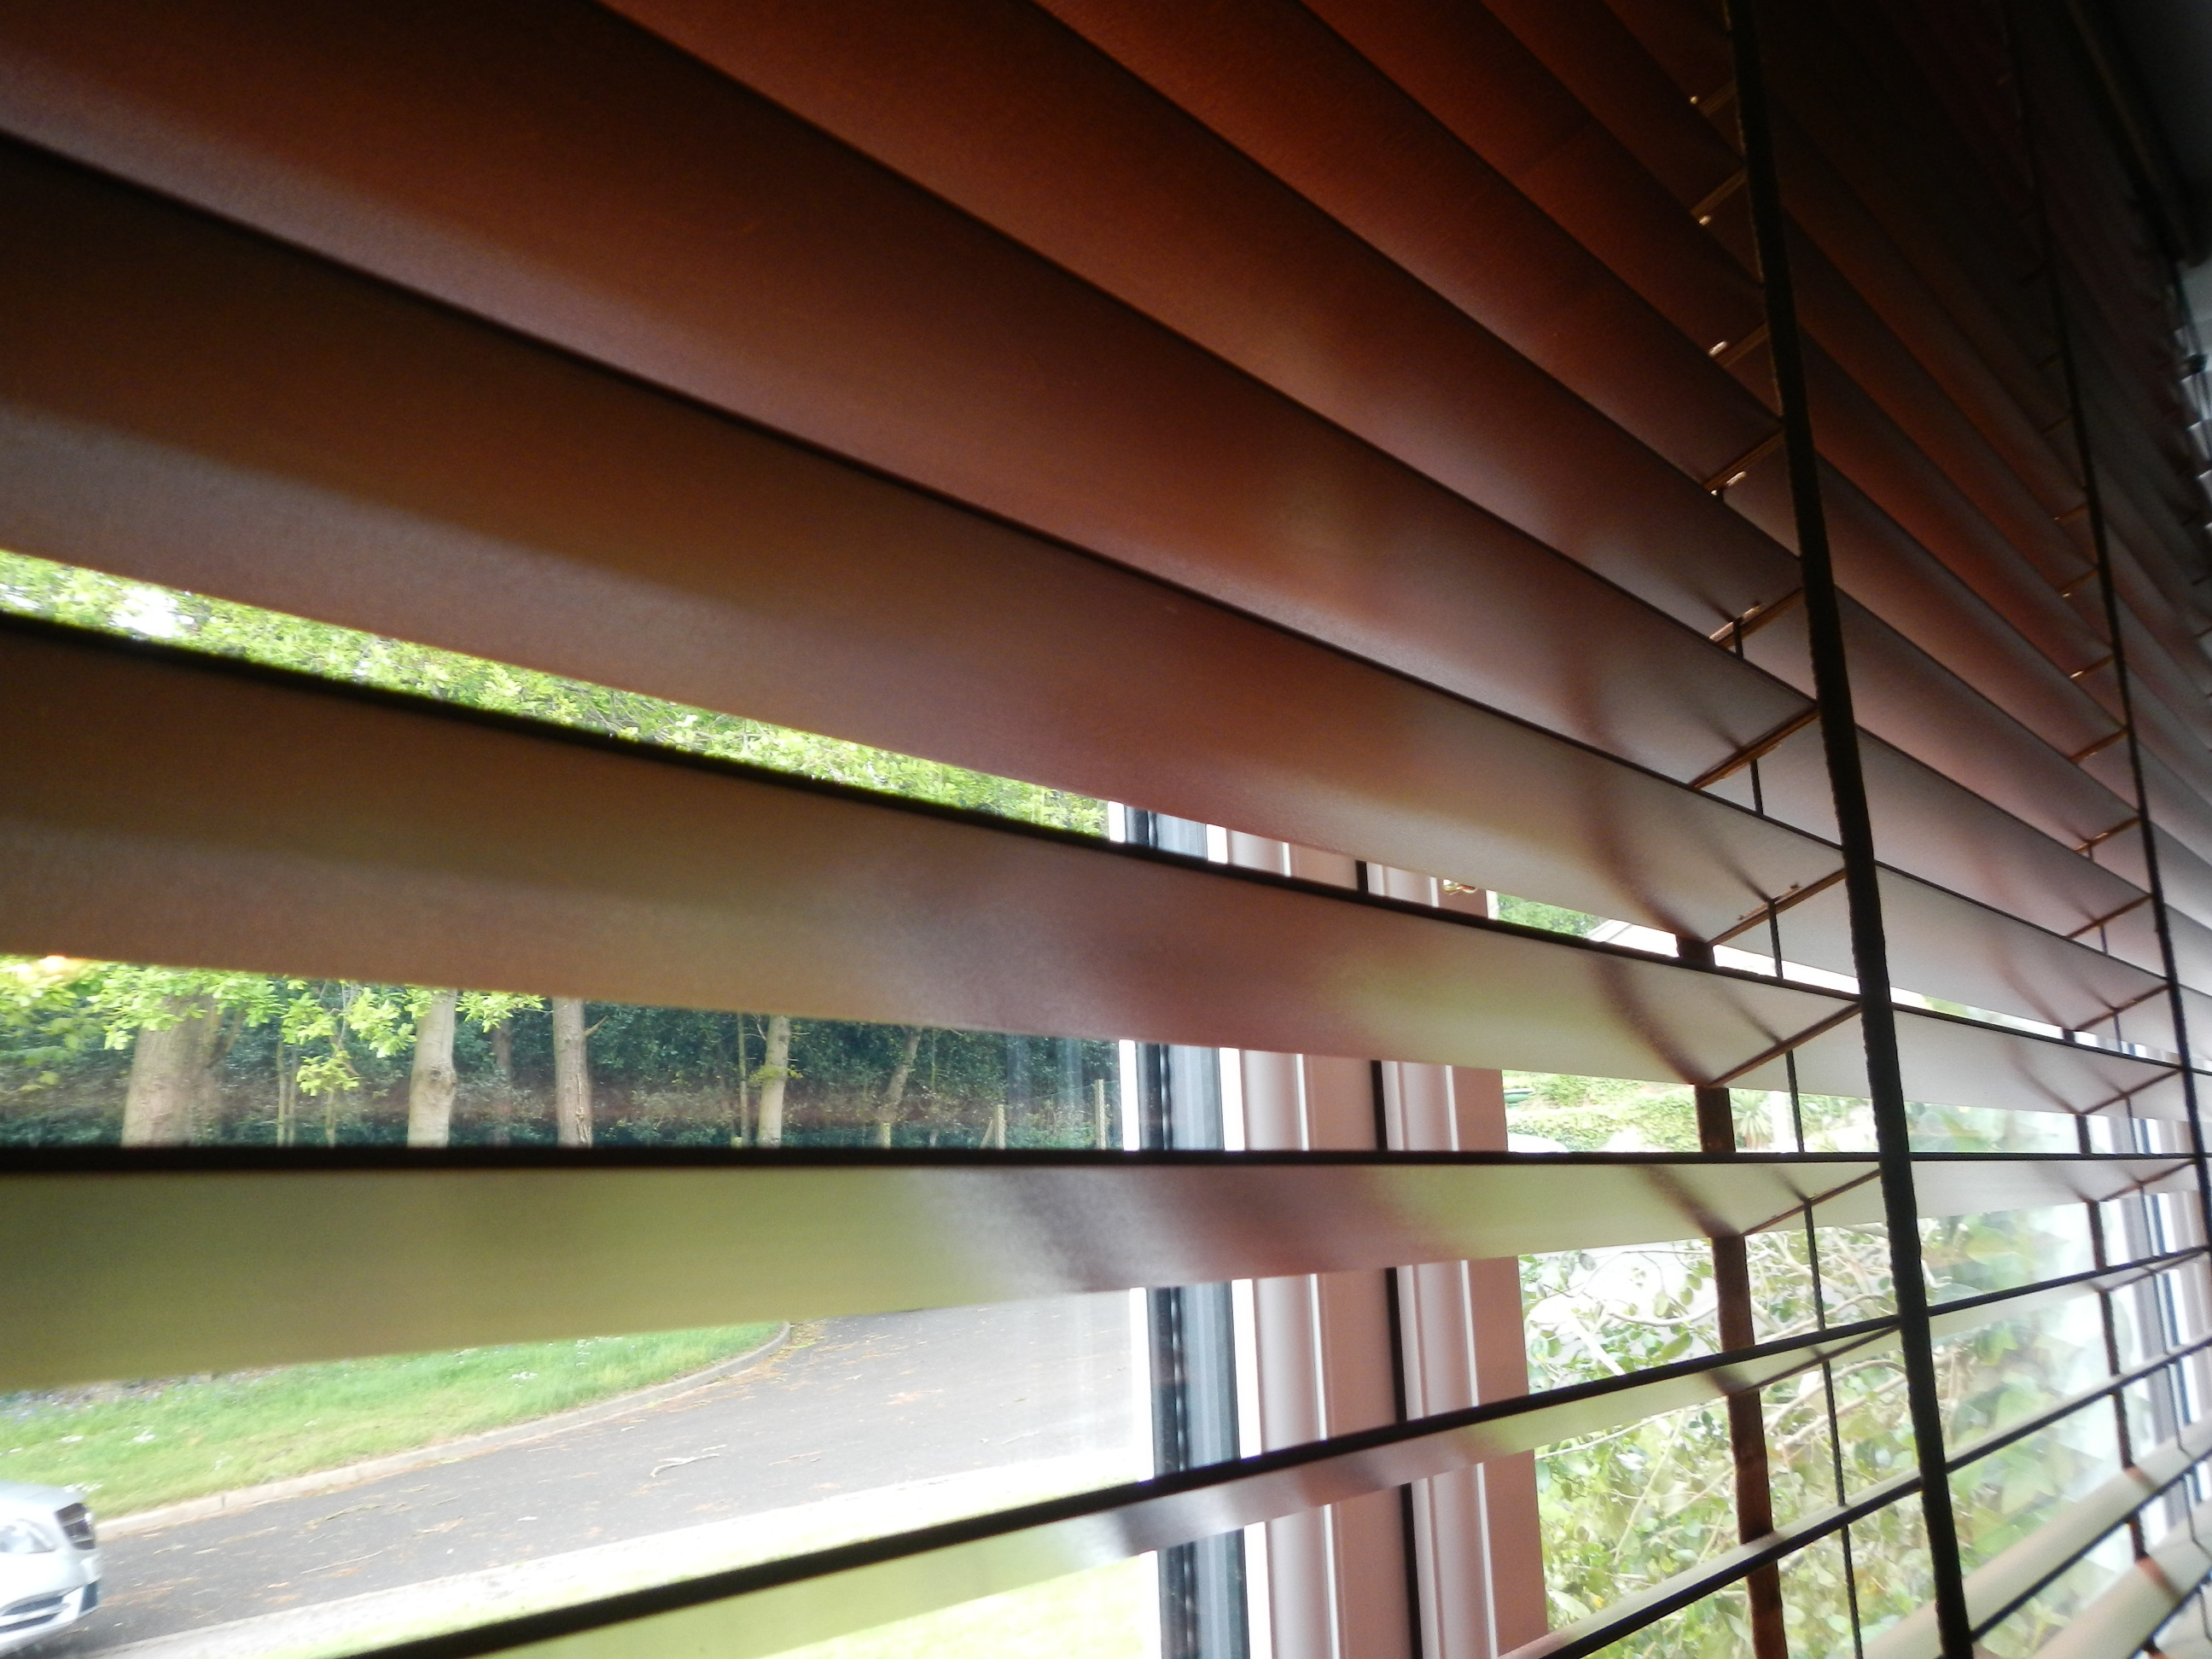 2 Faux wood blinds eye catching arched window treatments